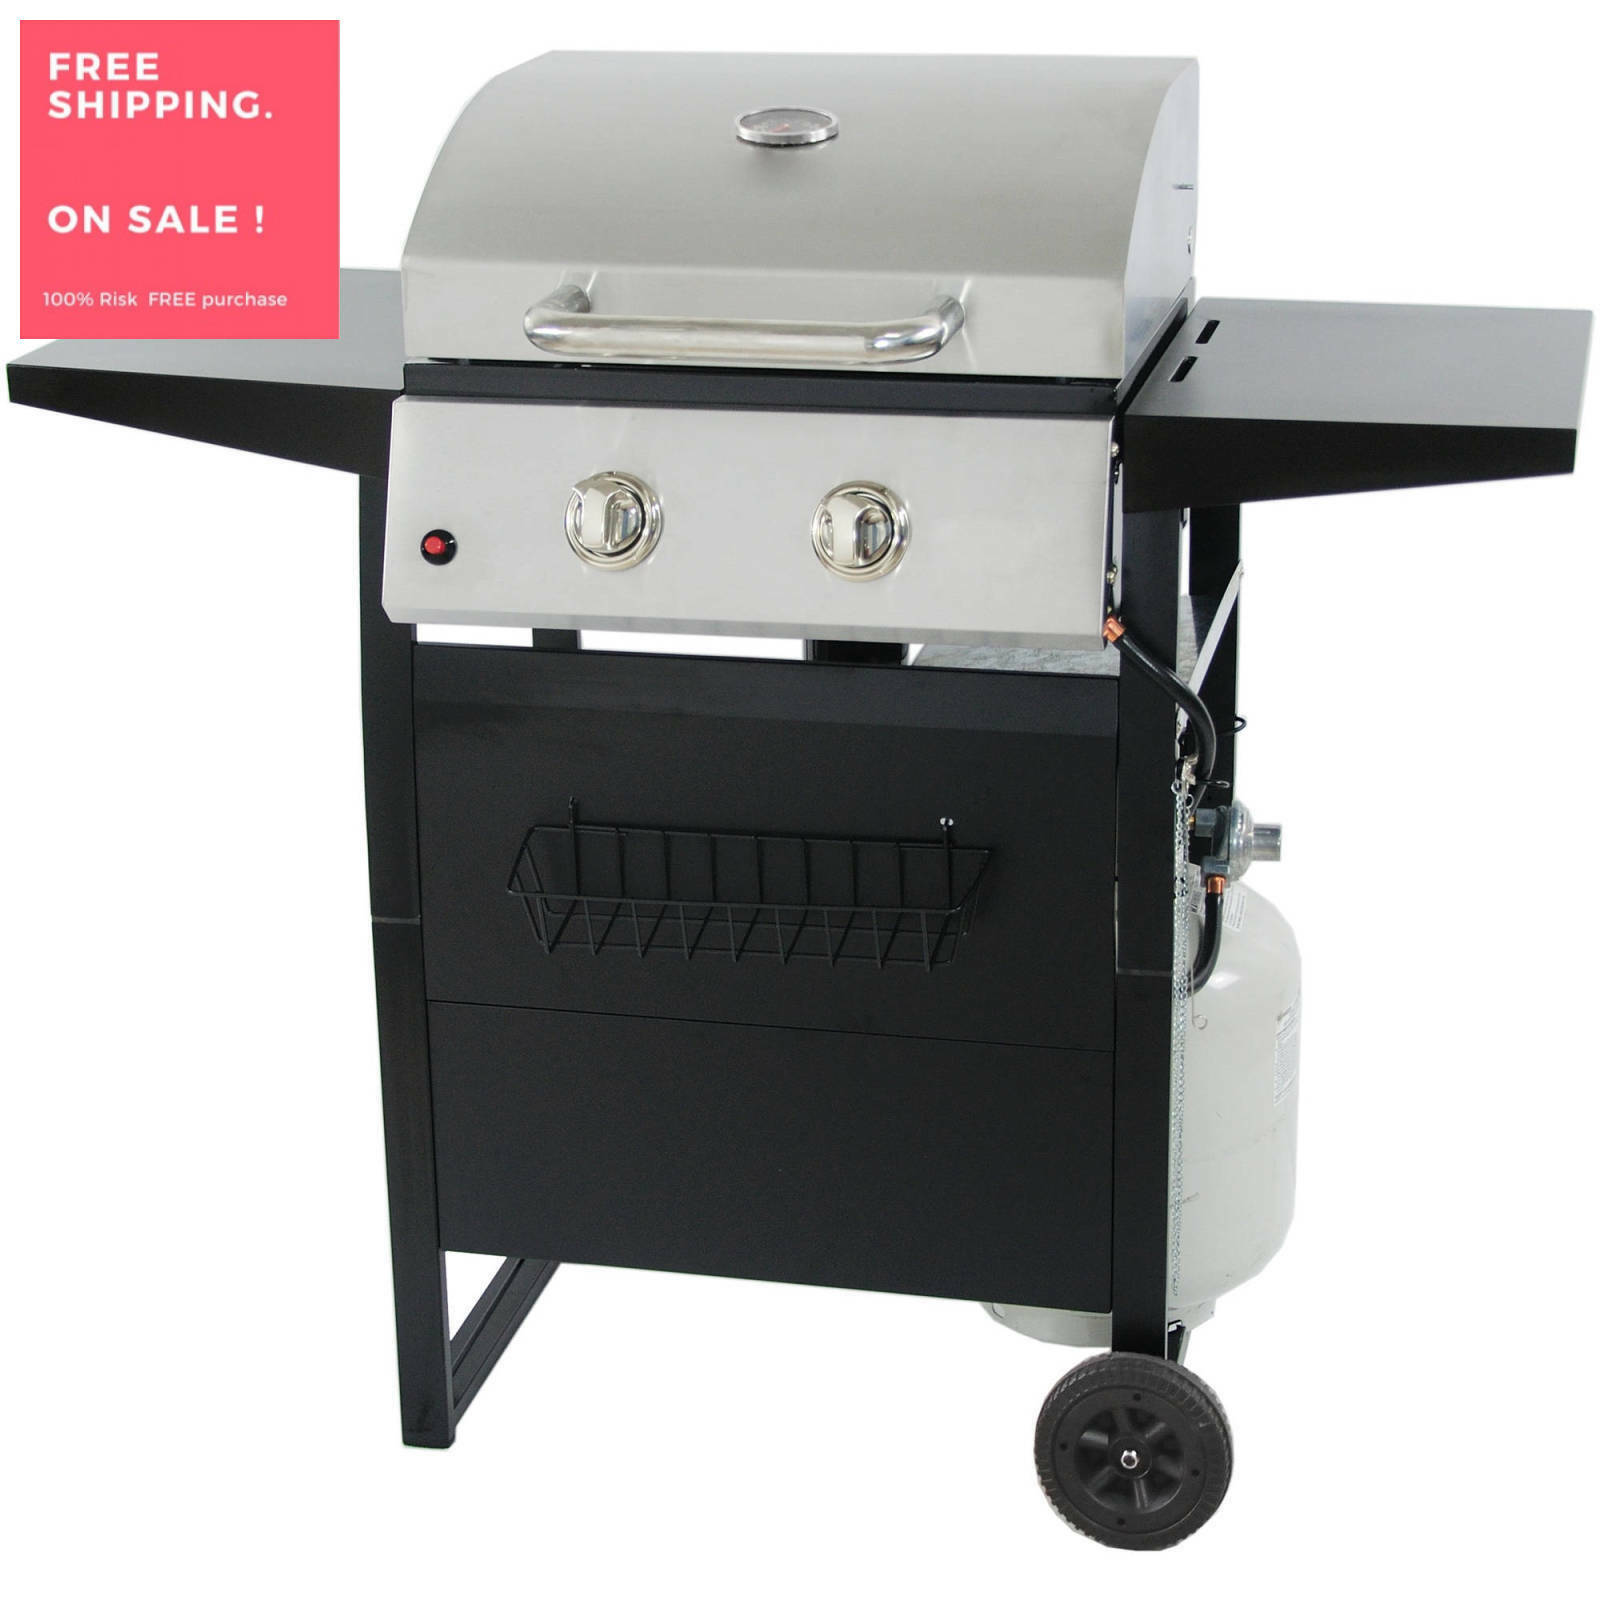 Details About Stainless Steel Bbq 2 Burner Gas Grill Fold Compact Portable Patio Meat Barbecue